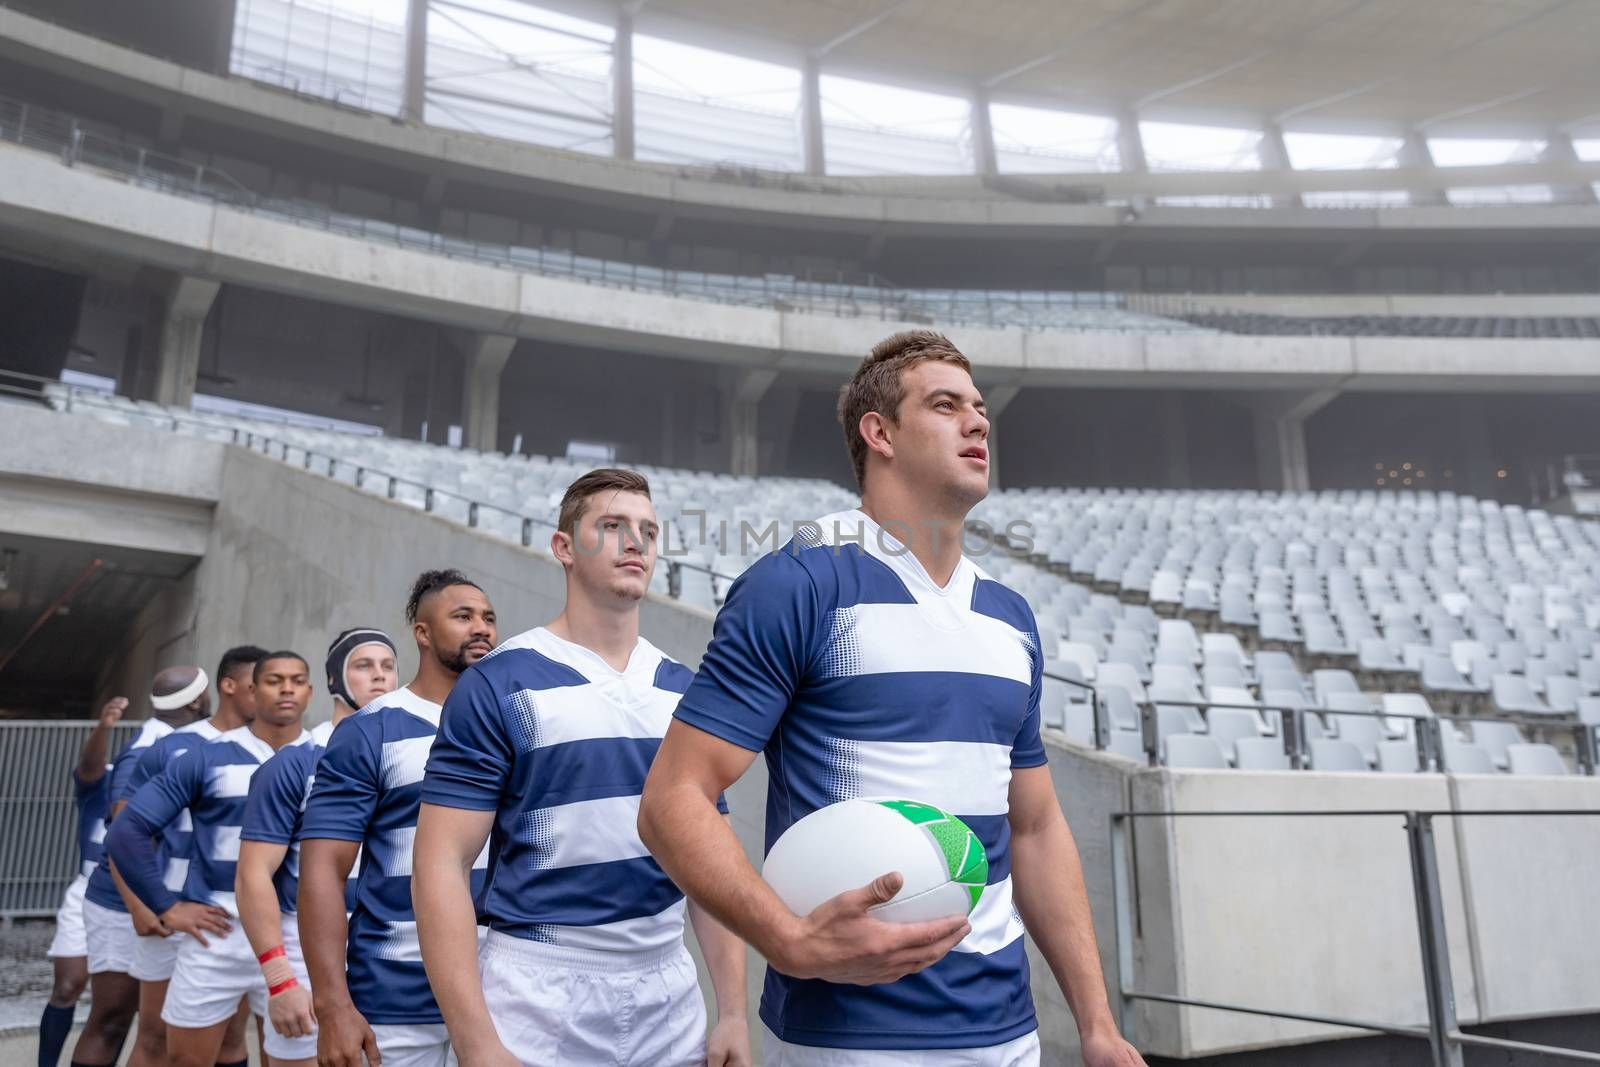 Side View of group of diverse rugby players entering stadium in a row for match